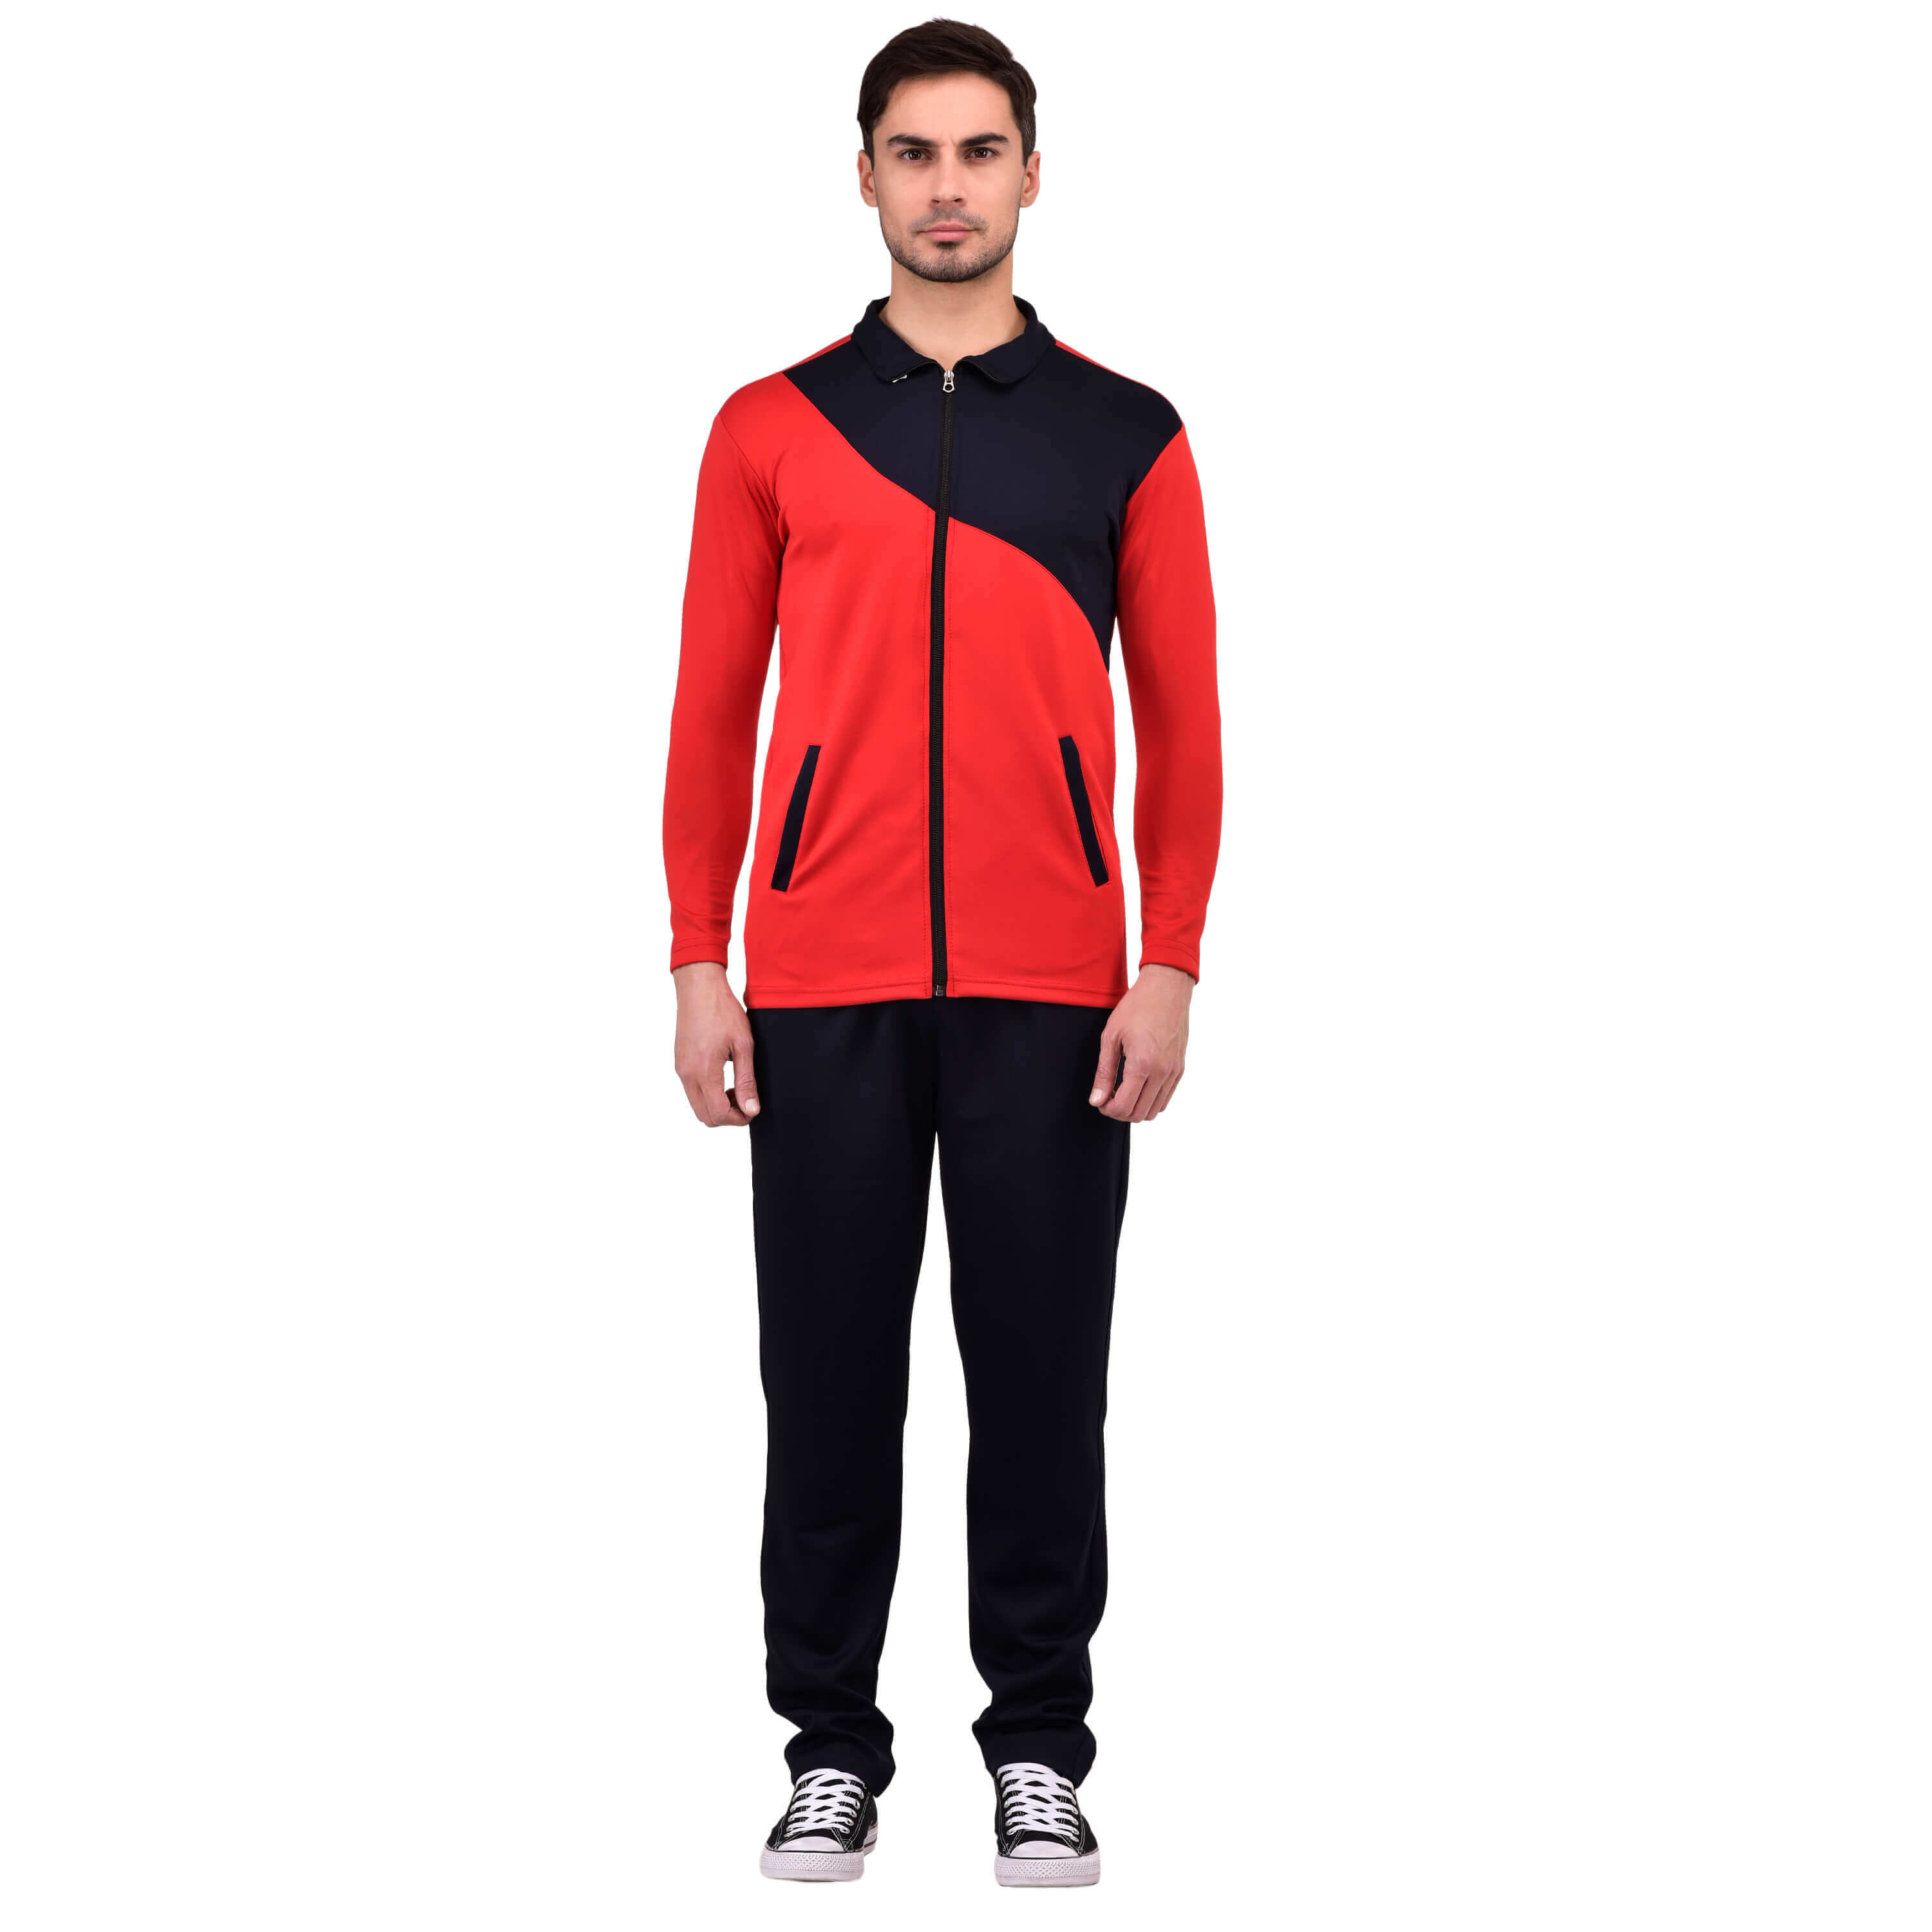 Mens Jogging Suits Manufacturers in Nanded